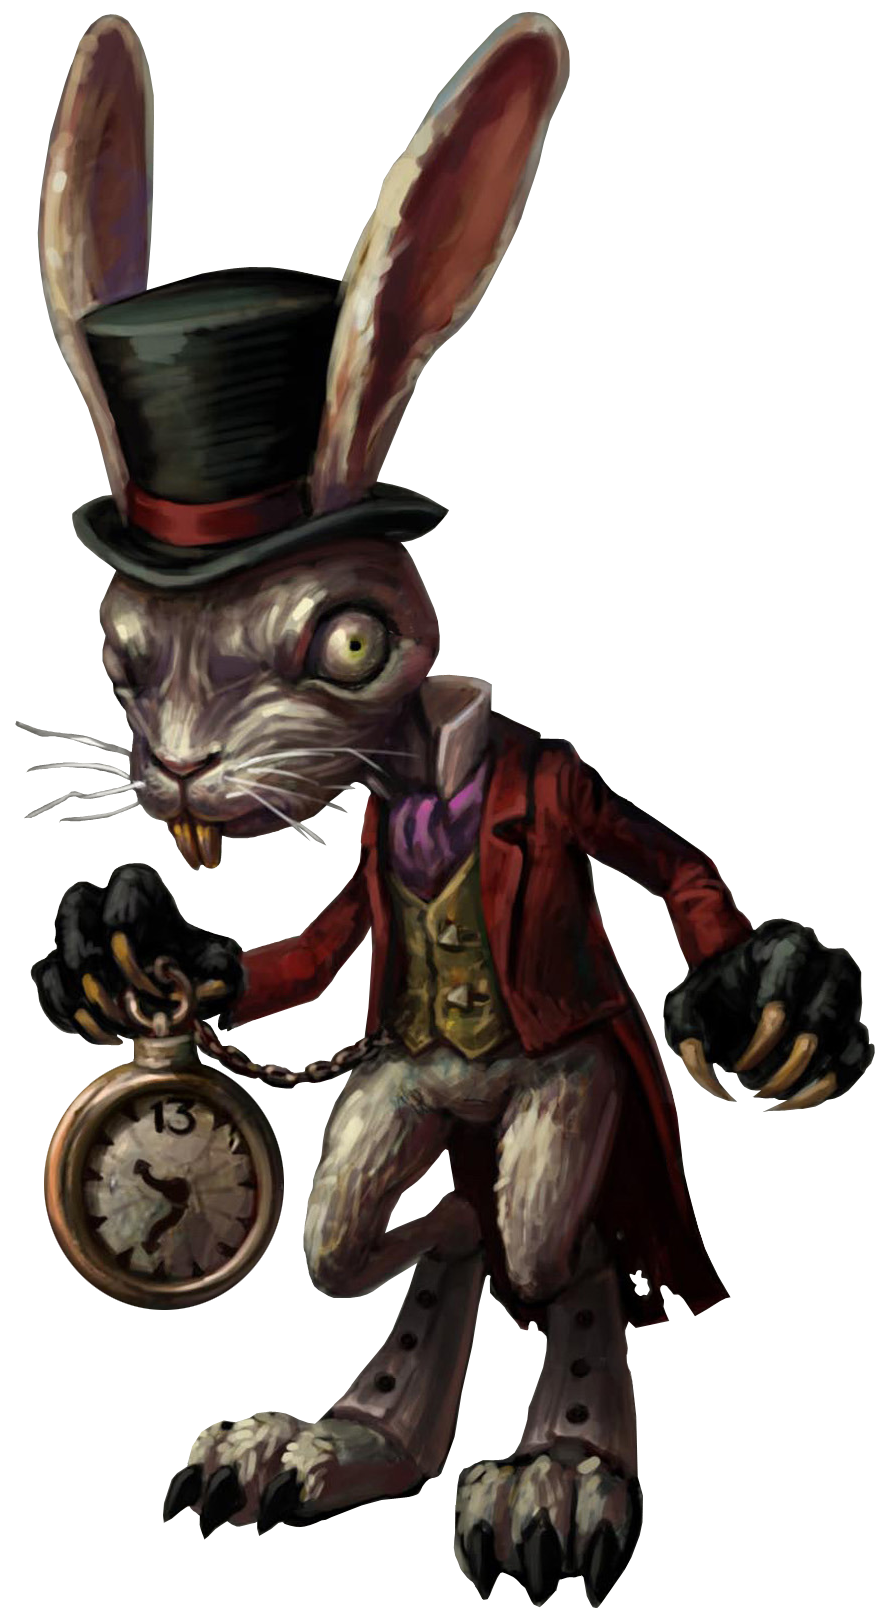 White Rabbit Png File:rabbit Concept Art.png